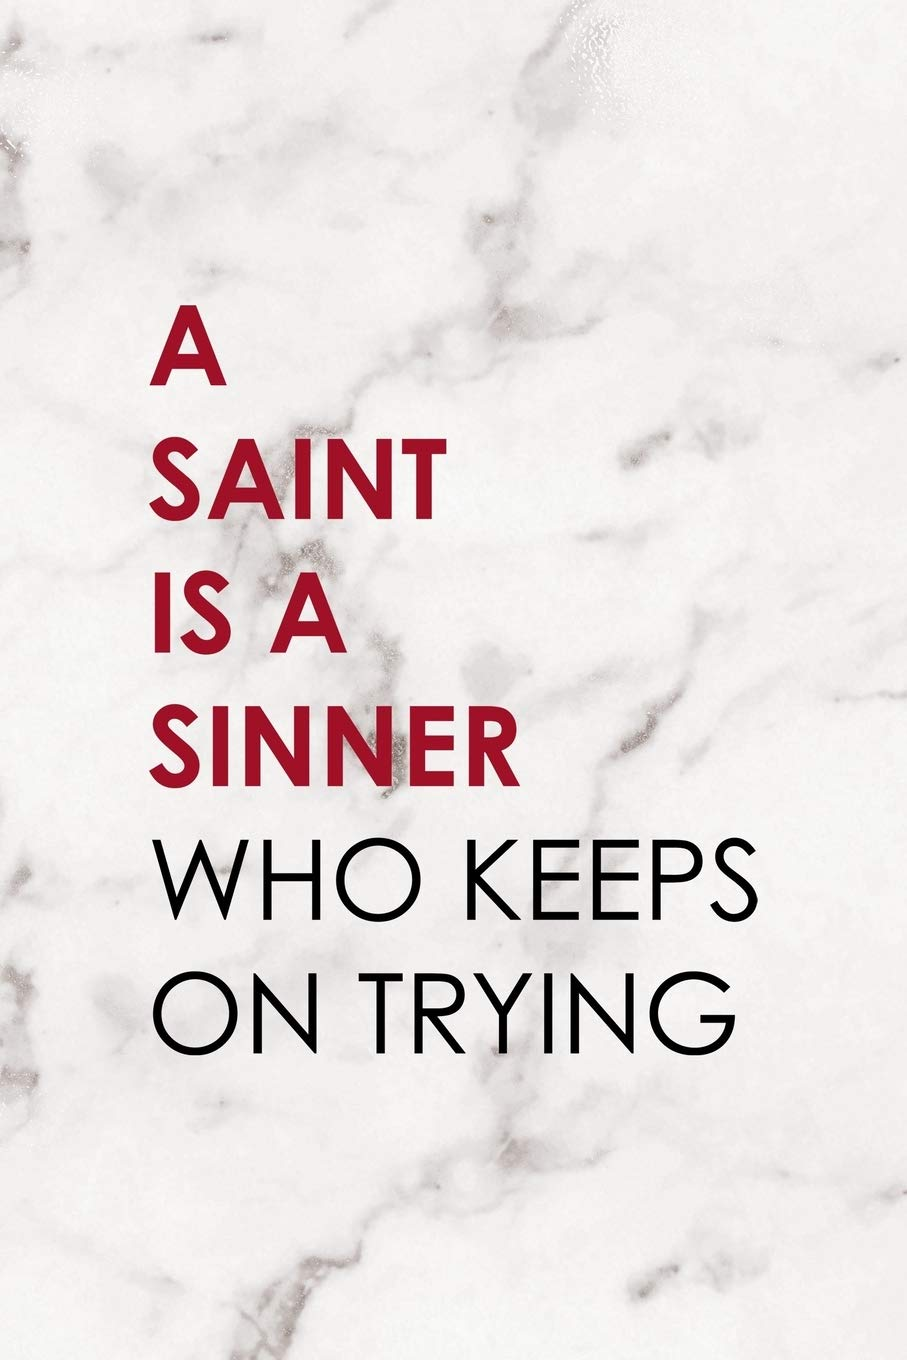 A Saint Is A Sinner Who Keeps On Trying Notebook Journal Composition Blank Lined Diary Notepad 120 Pages Paperback Marble Sinner Rosario Xi Tallulah 9781671344990 Books